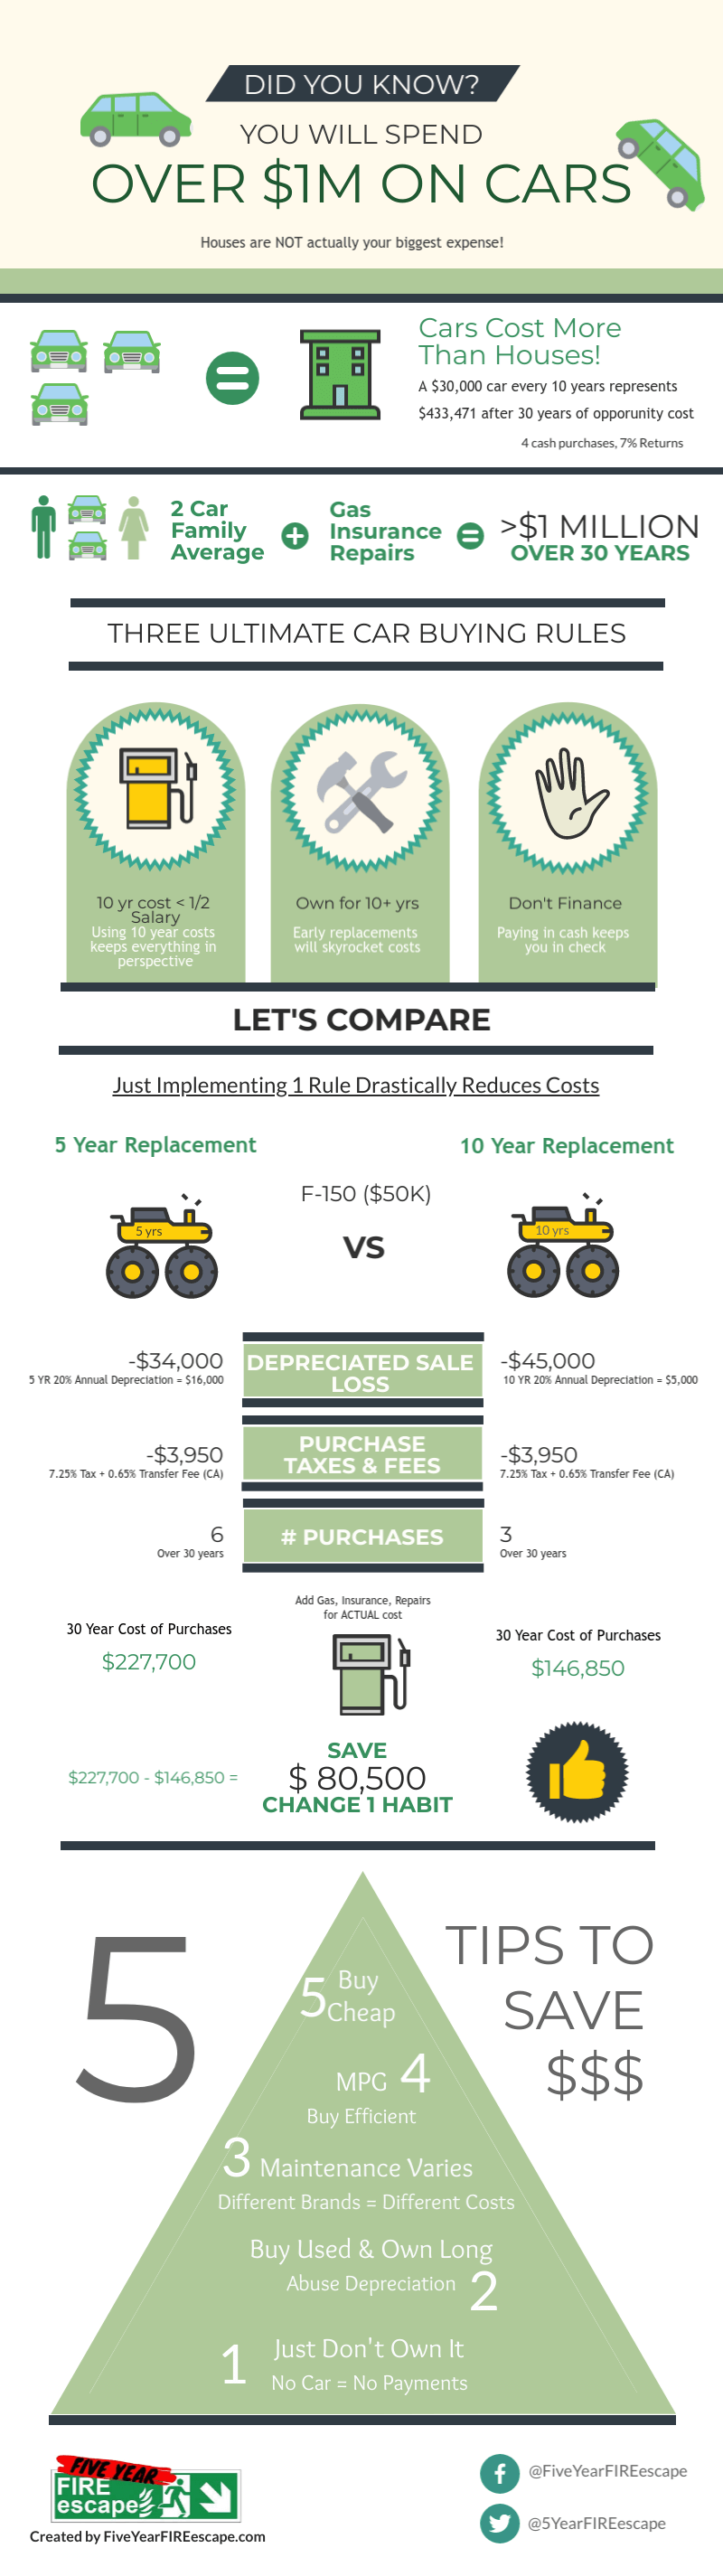 How-much-car-can-I-afford-infographic